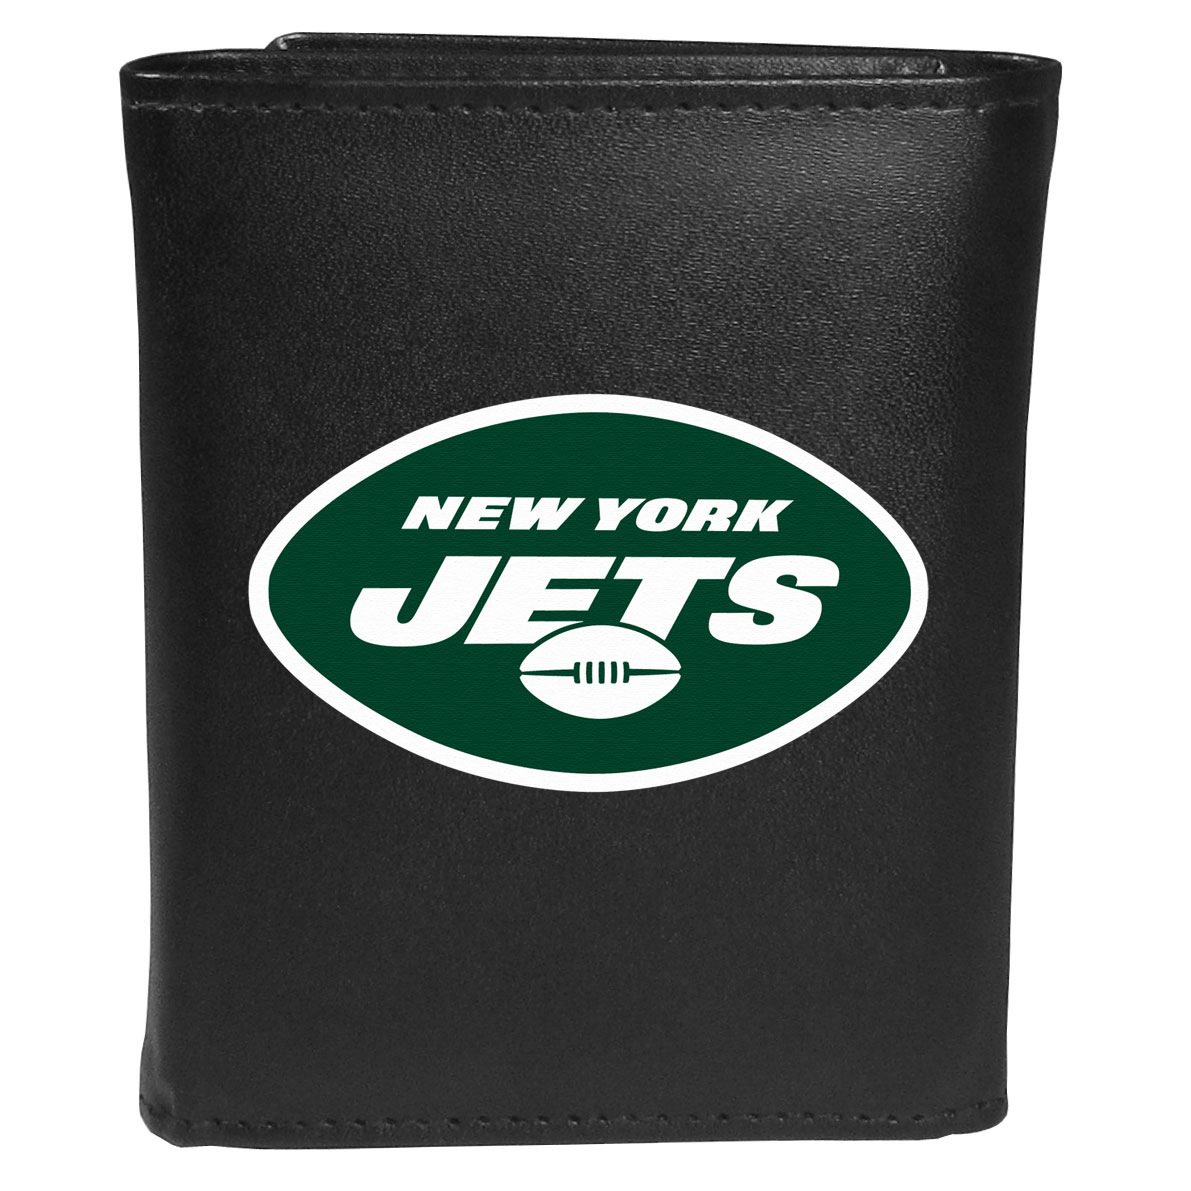 New York Jets Tri-fold Wallet Large Logo - Sports fans do not have to sacrifice style with this classic tri-fold wallet that sports theNew York Jets?extra large logo. This men's fashion accessory has a leather grain look and expert craftmanship for a quality wallet at a great price. The wallet features inner credit card slots, windowed ID slot and a large billfold pocket. The front of the wallet features an extra large printed team logo.